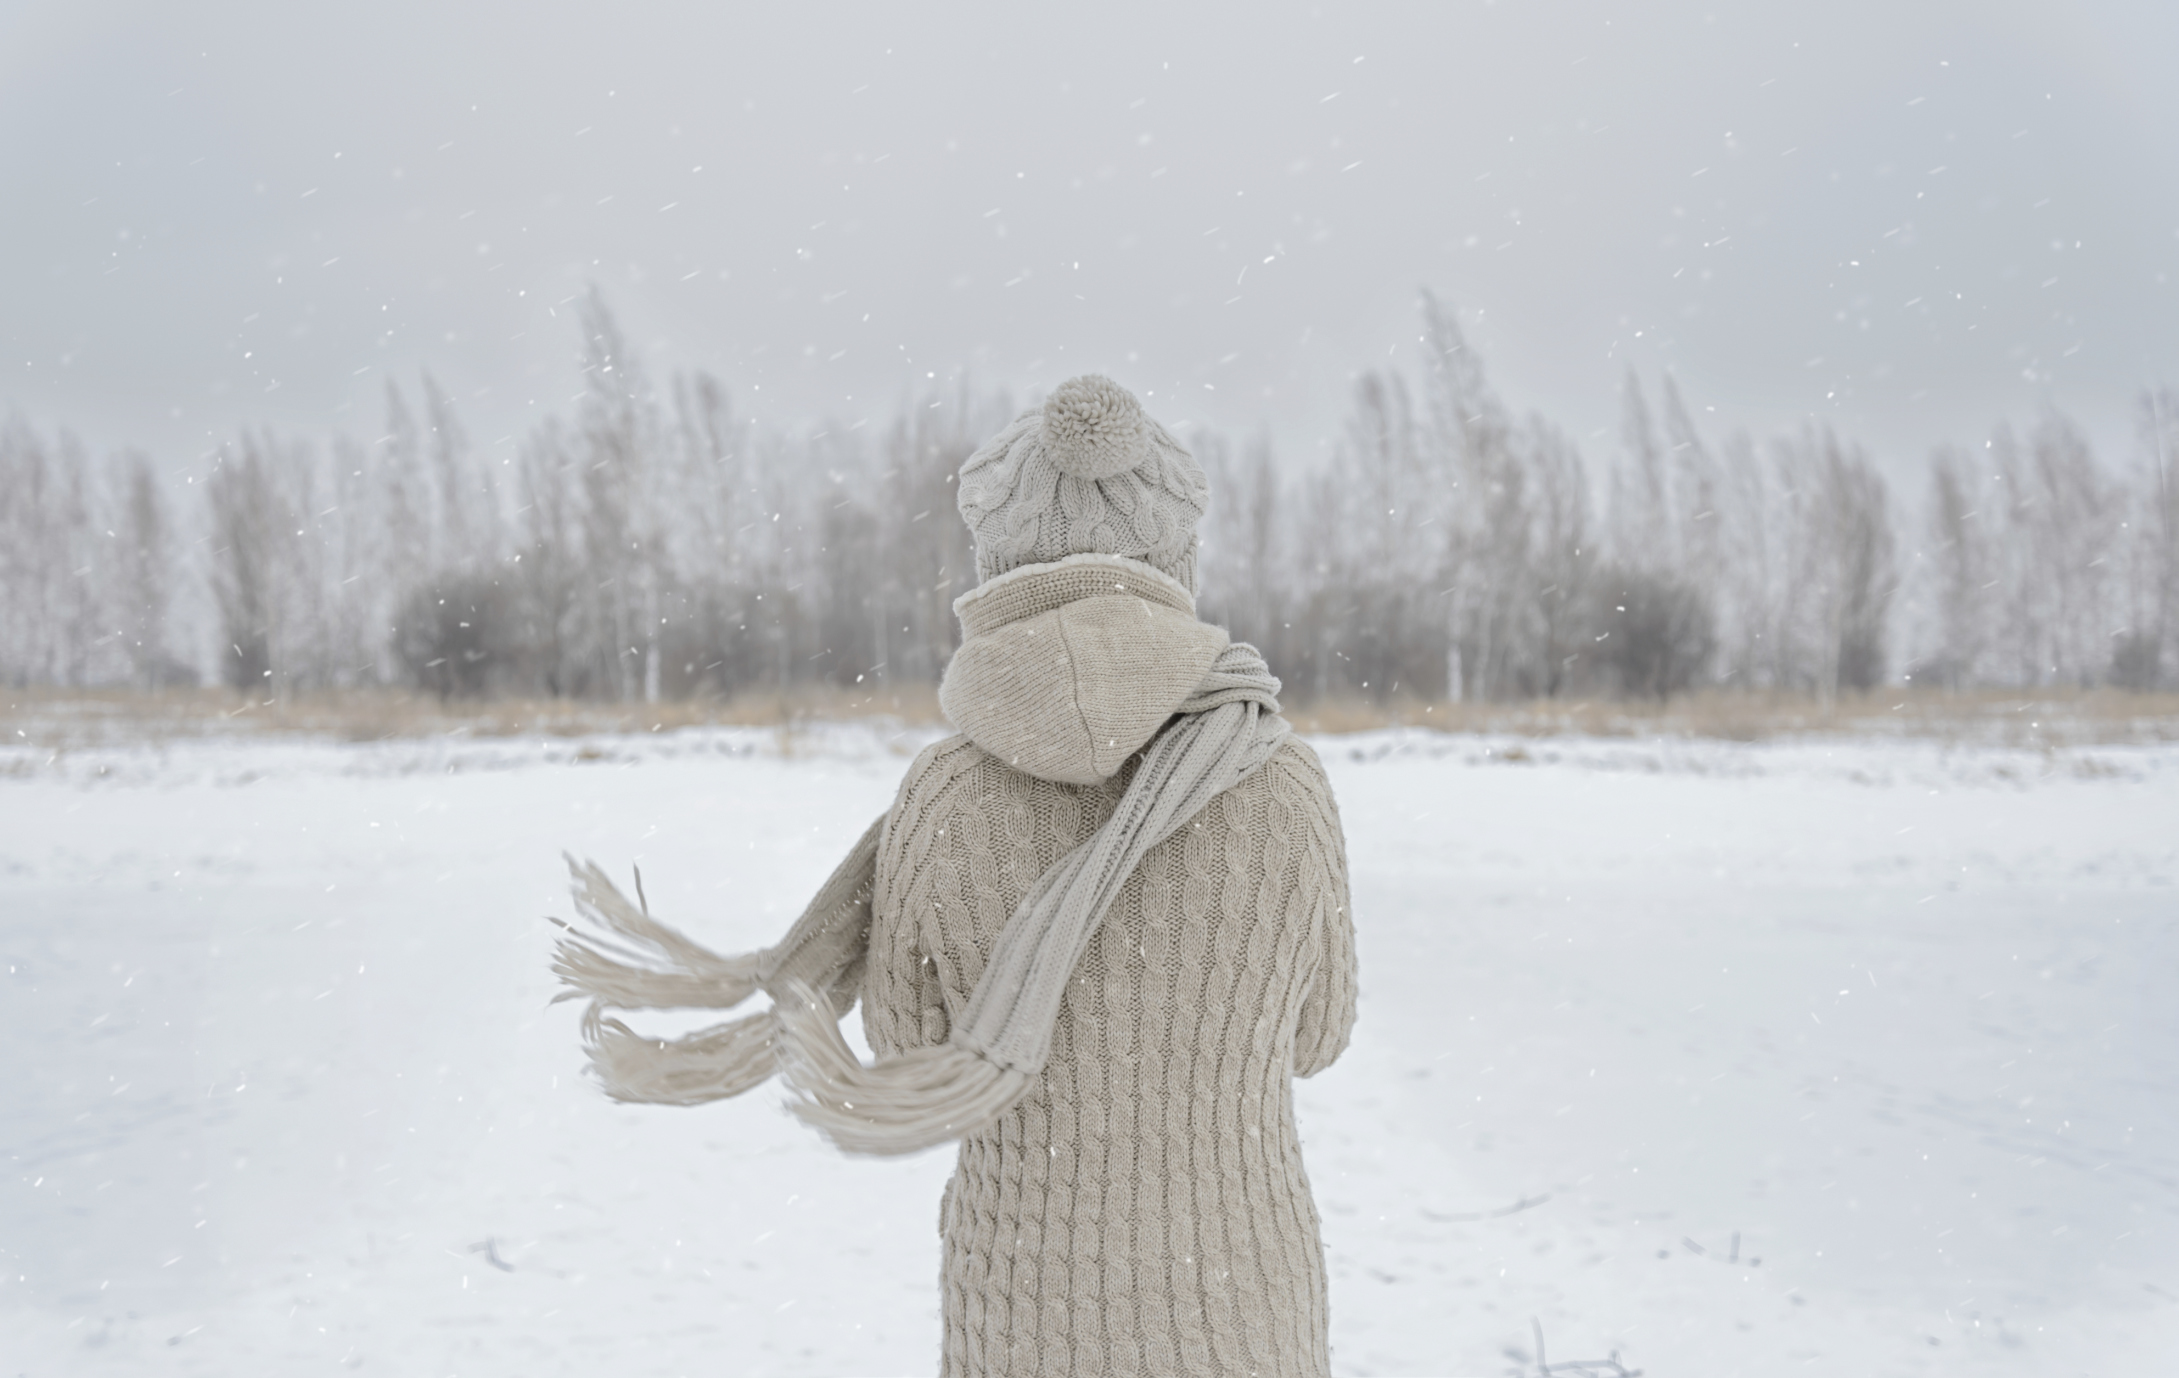 Person standing in the middle of a snowy meadow